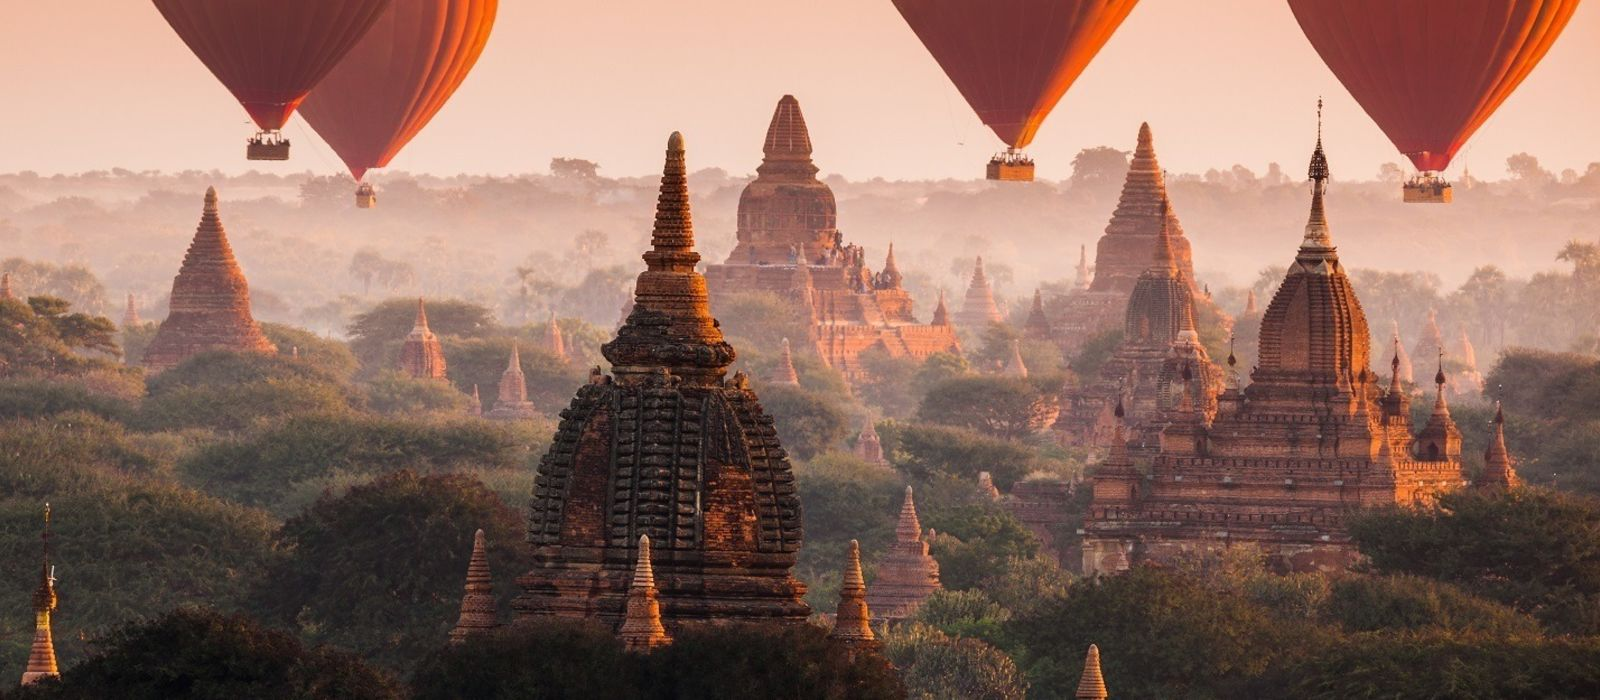 Hot air balloon over Bagan in misty morning, Myanmar, Asia